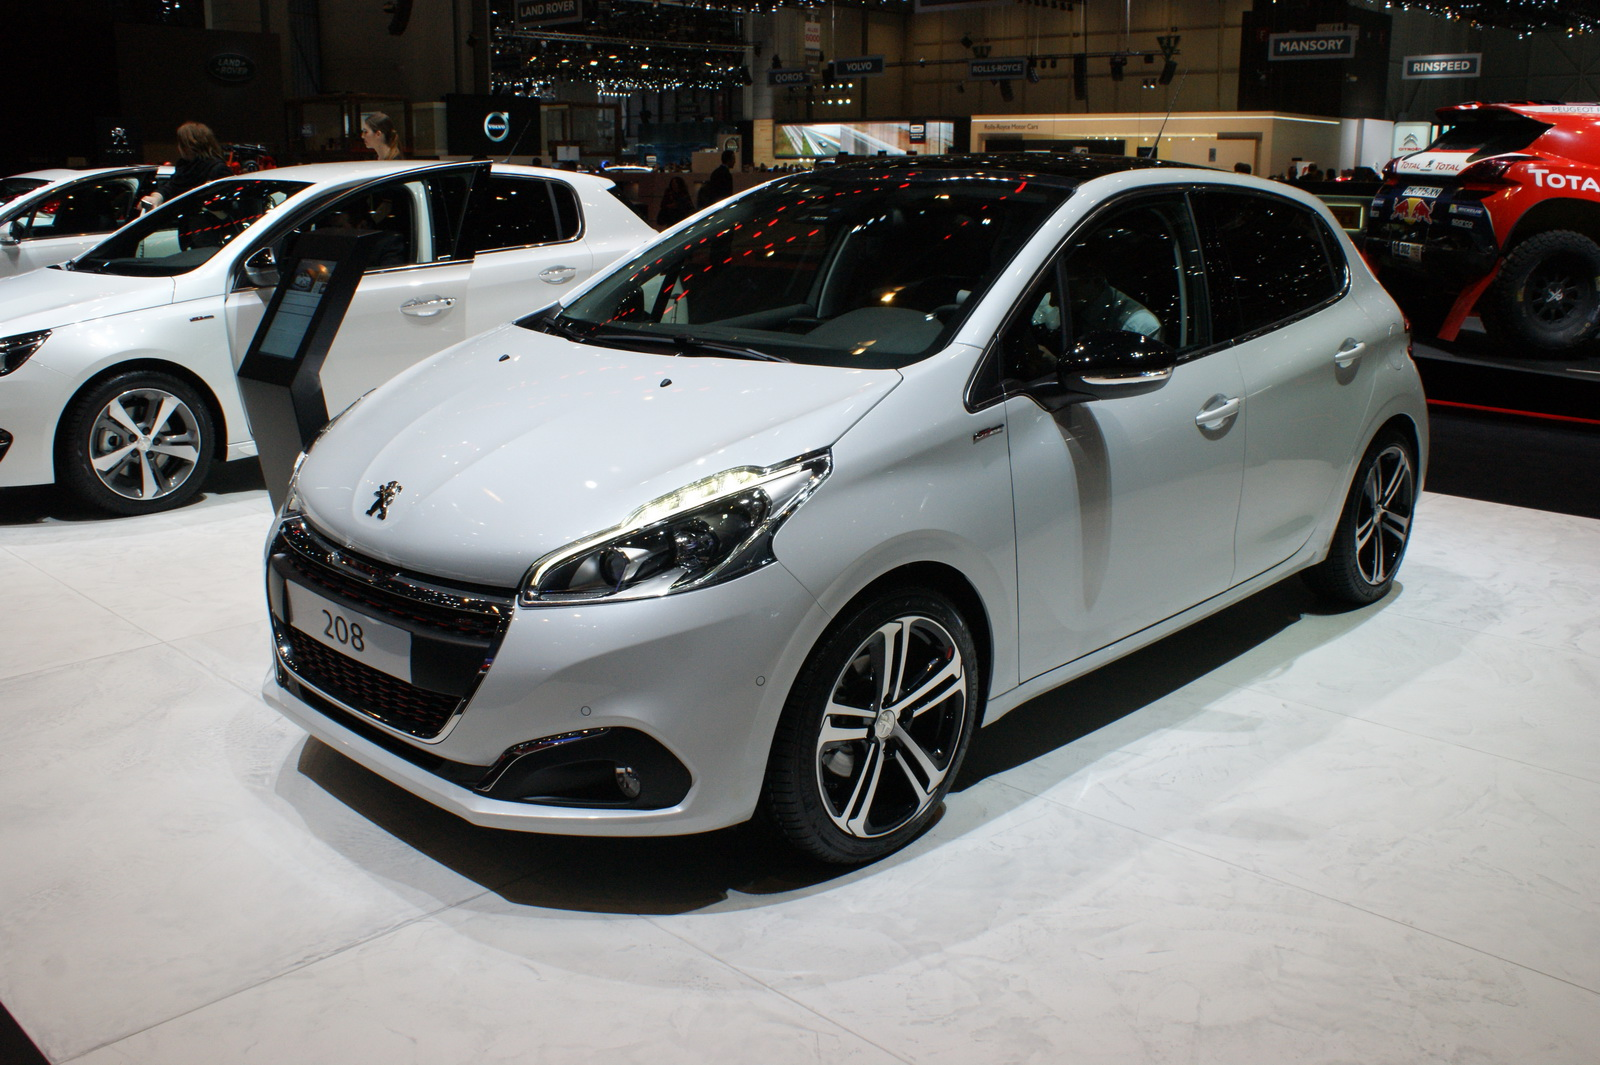 el nuevo peugeot 208 es el coche no h brido m s eficiente en europa. Black Bedroom Furniture Sets. Home Design Ideas